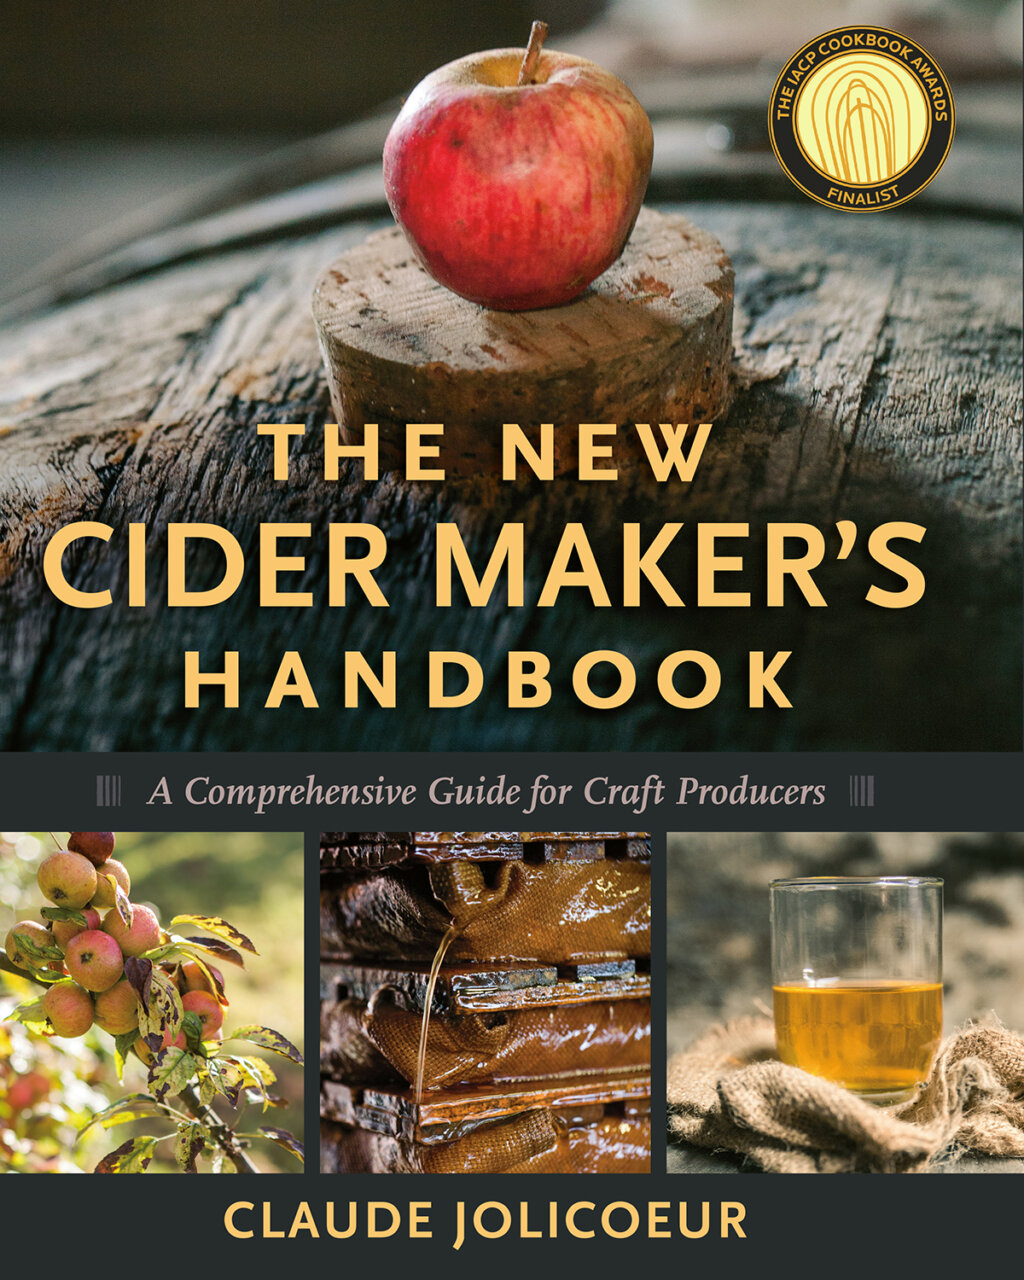 The New Cider Maker's Handbook cover